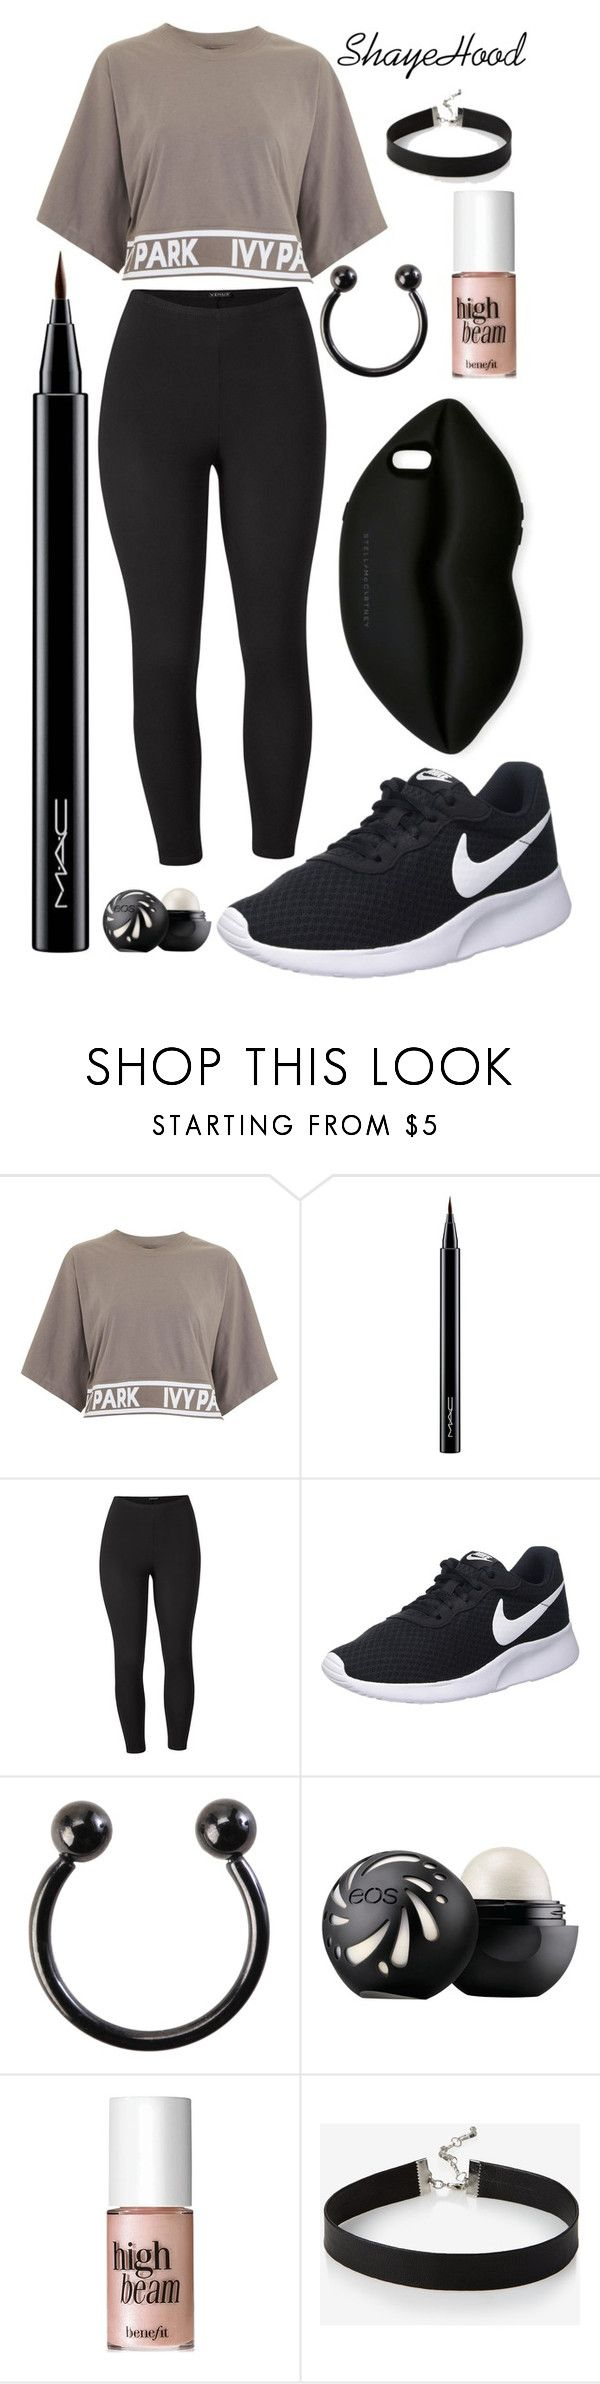 """""""17/O5/2O17"""" by shayehood on Polyvore featuring mode, Topshop, MAC Cosmetics, Venus, NIKE, Hot Topic, Benefit, Express, STELLA McCARTNEY et plus size clothing"""